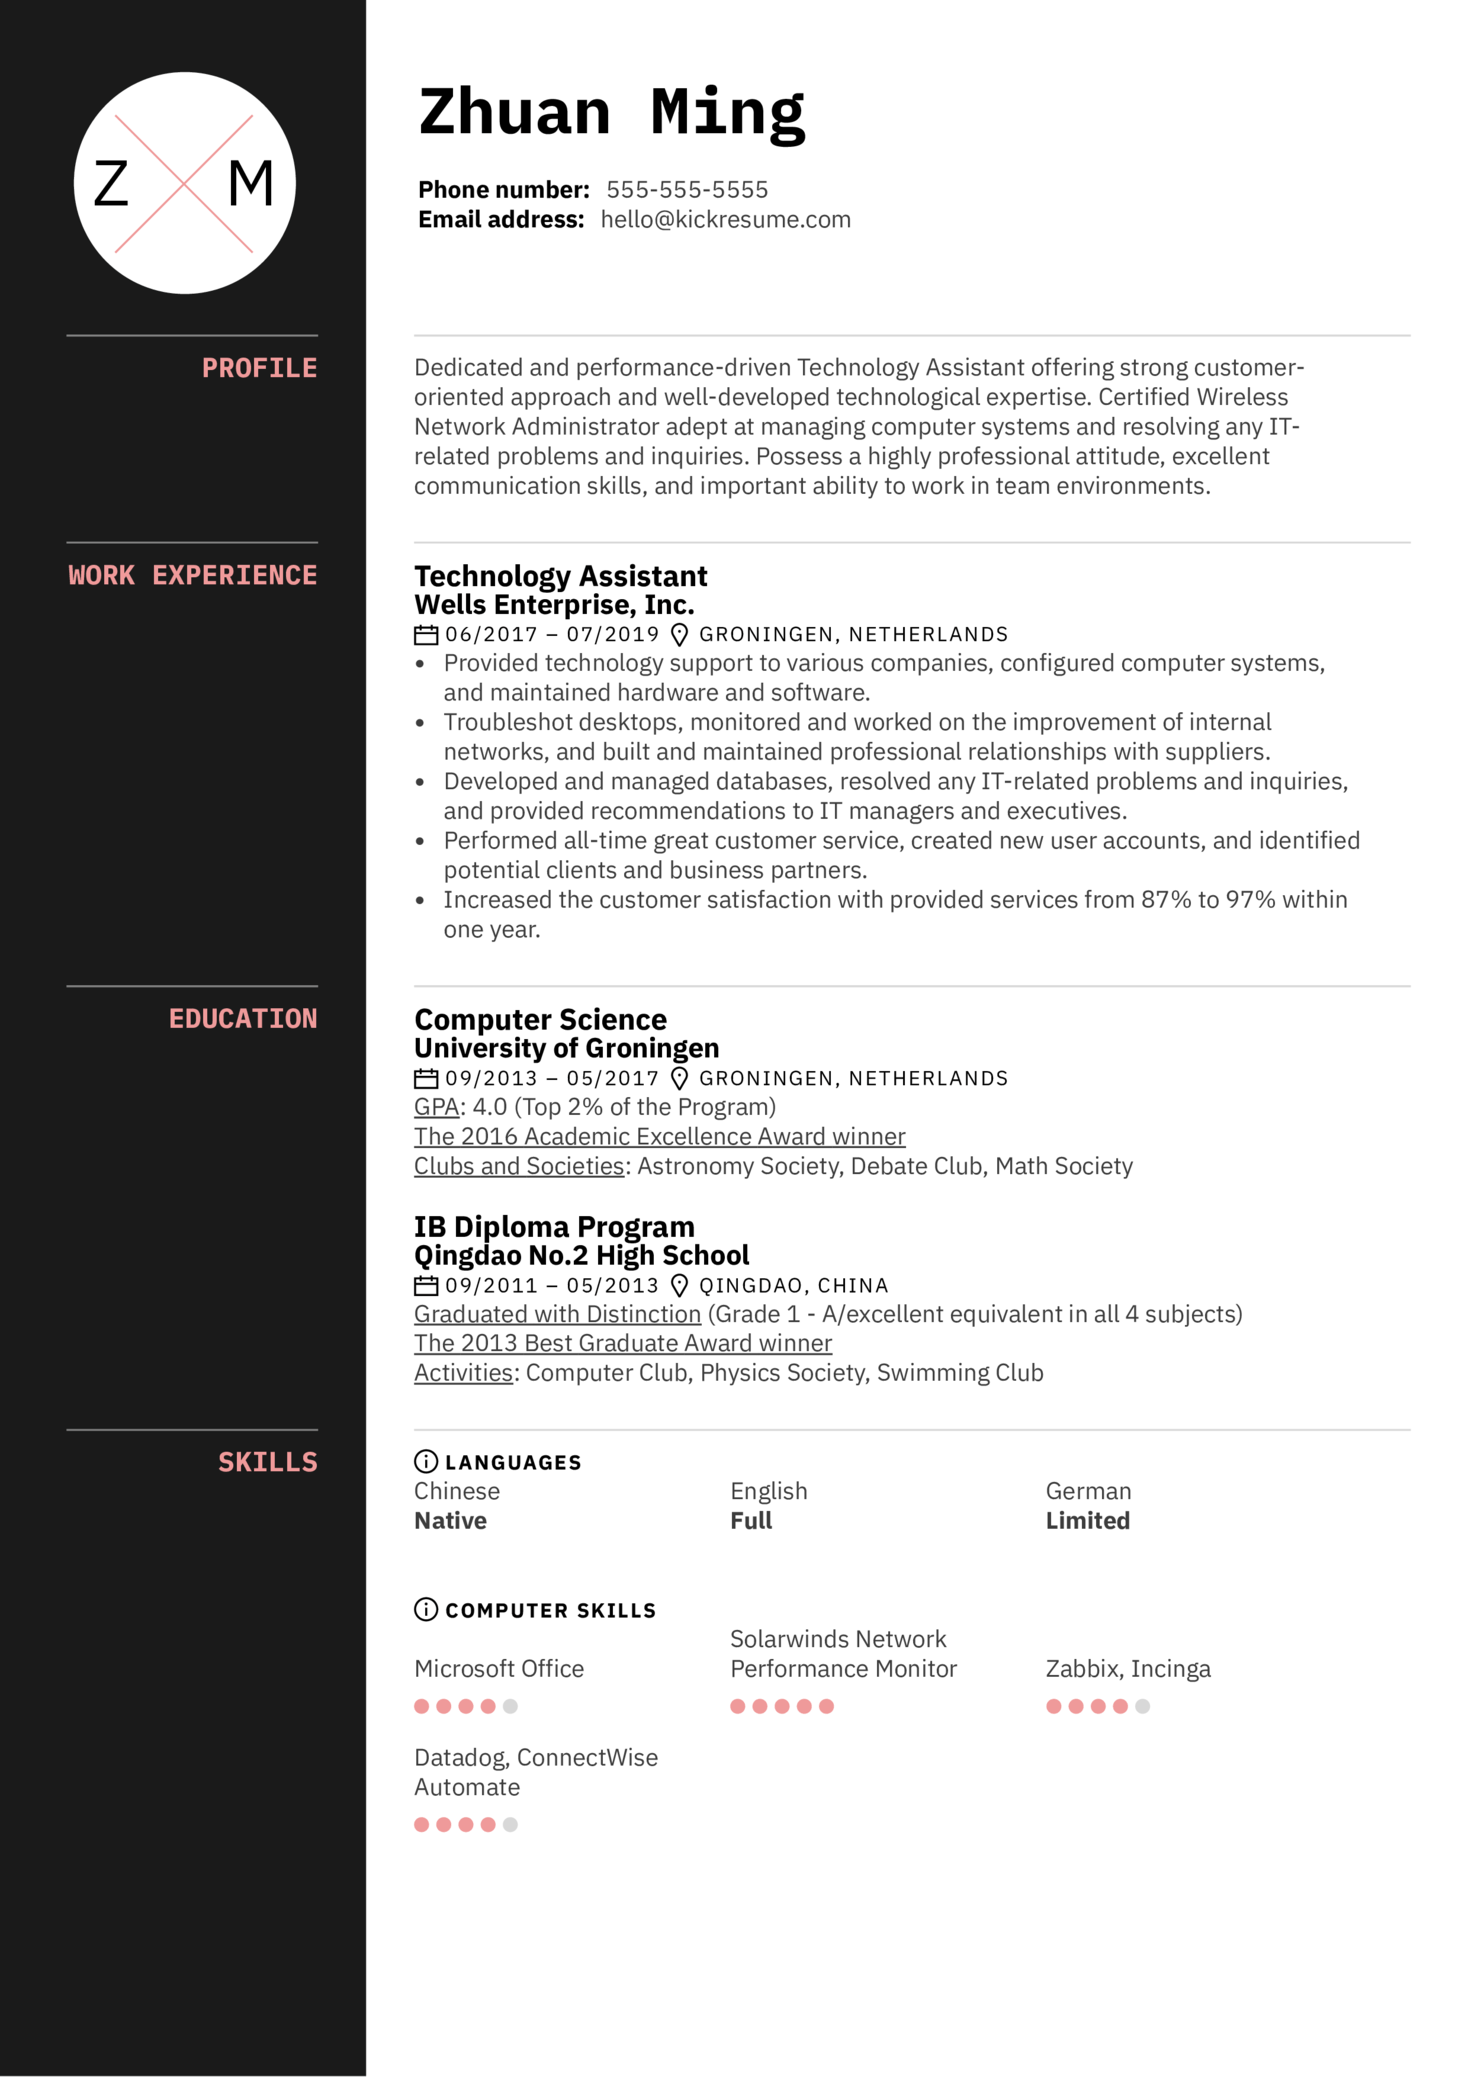 Technology Assistant Resume Sample (časť 1)